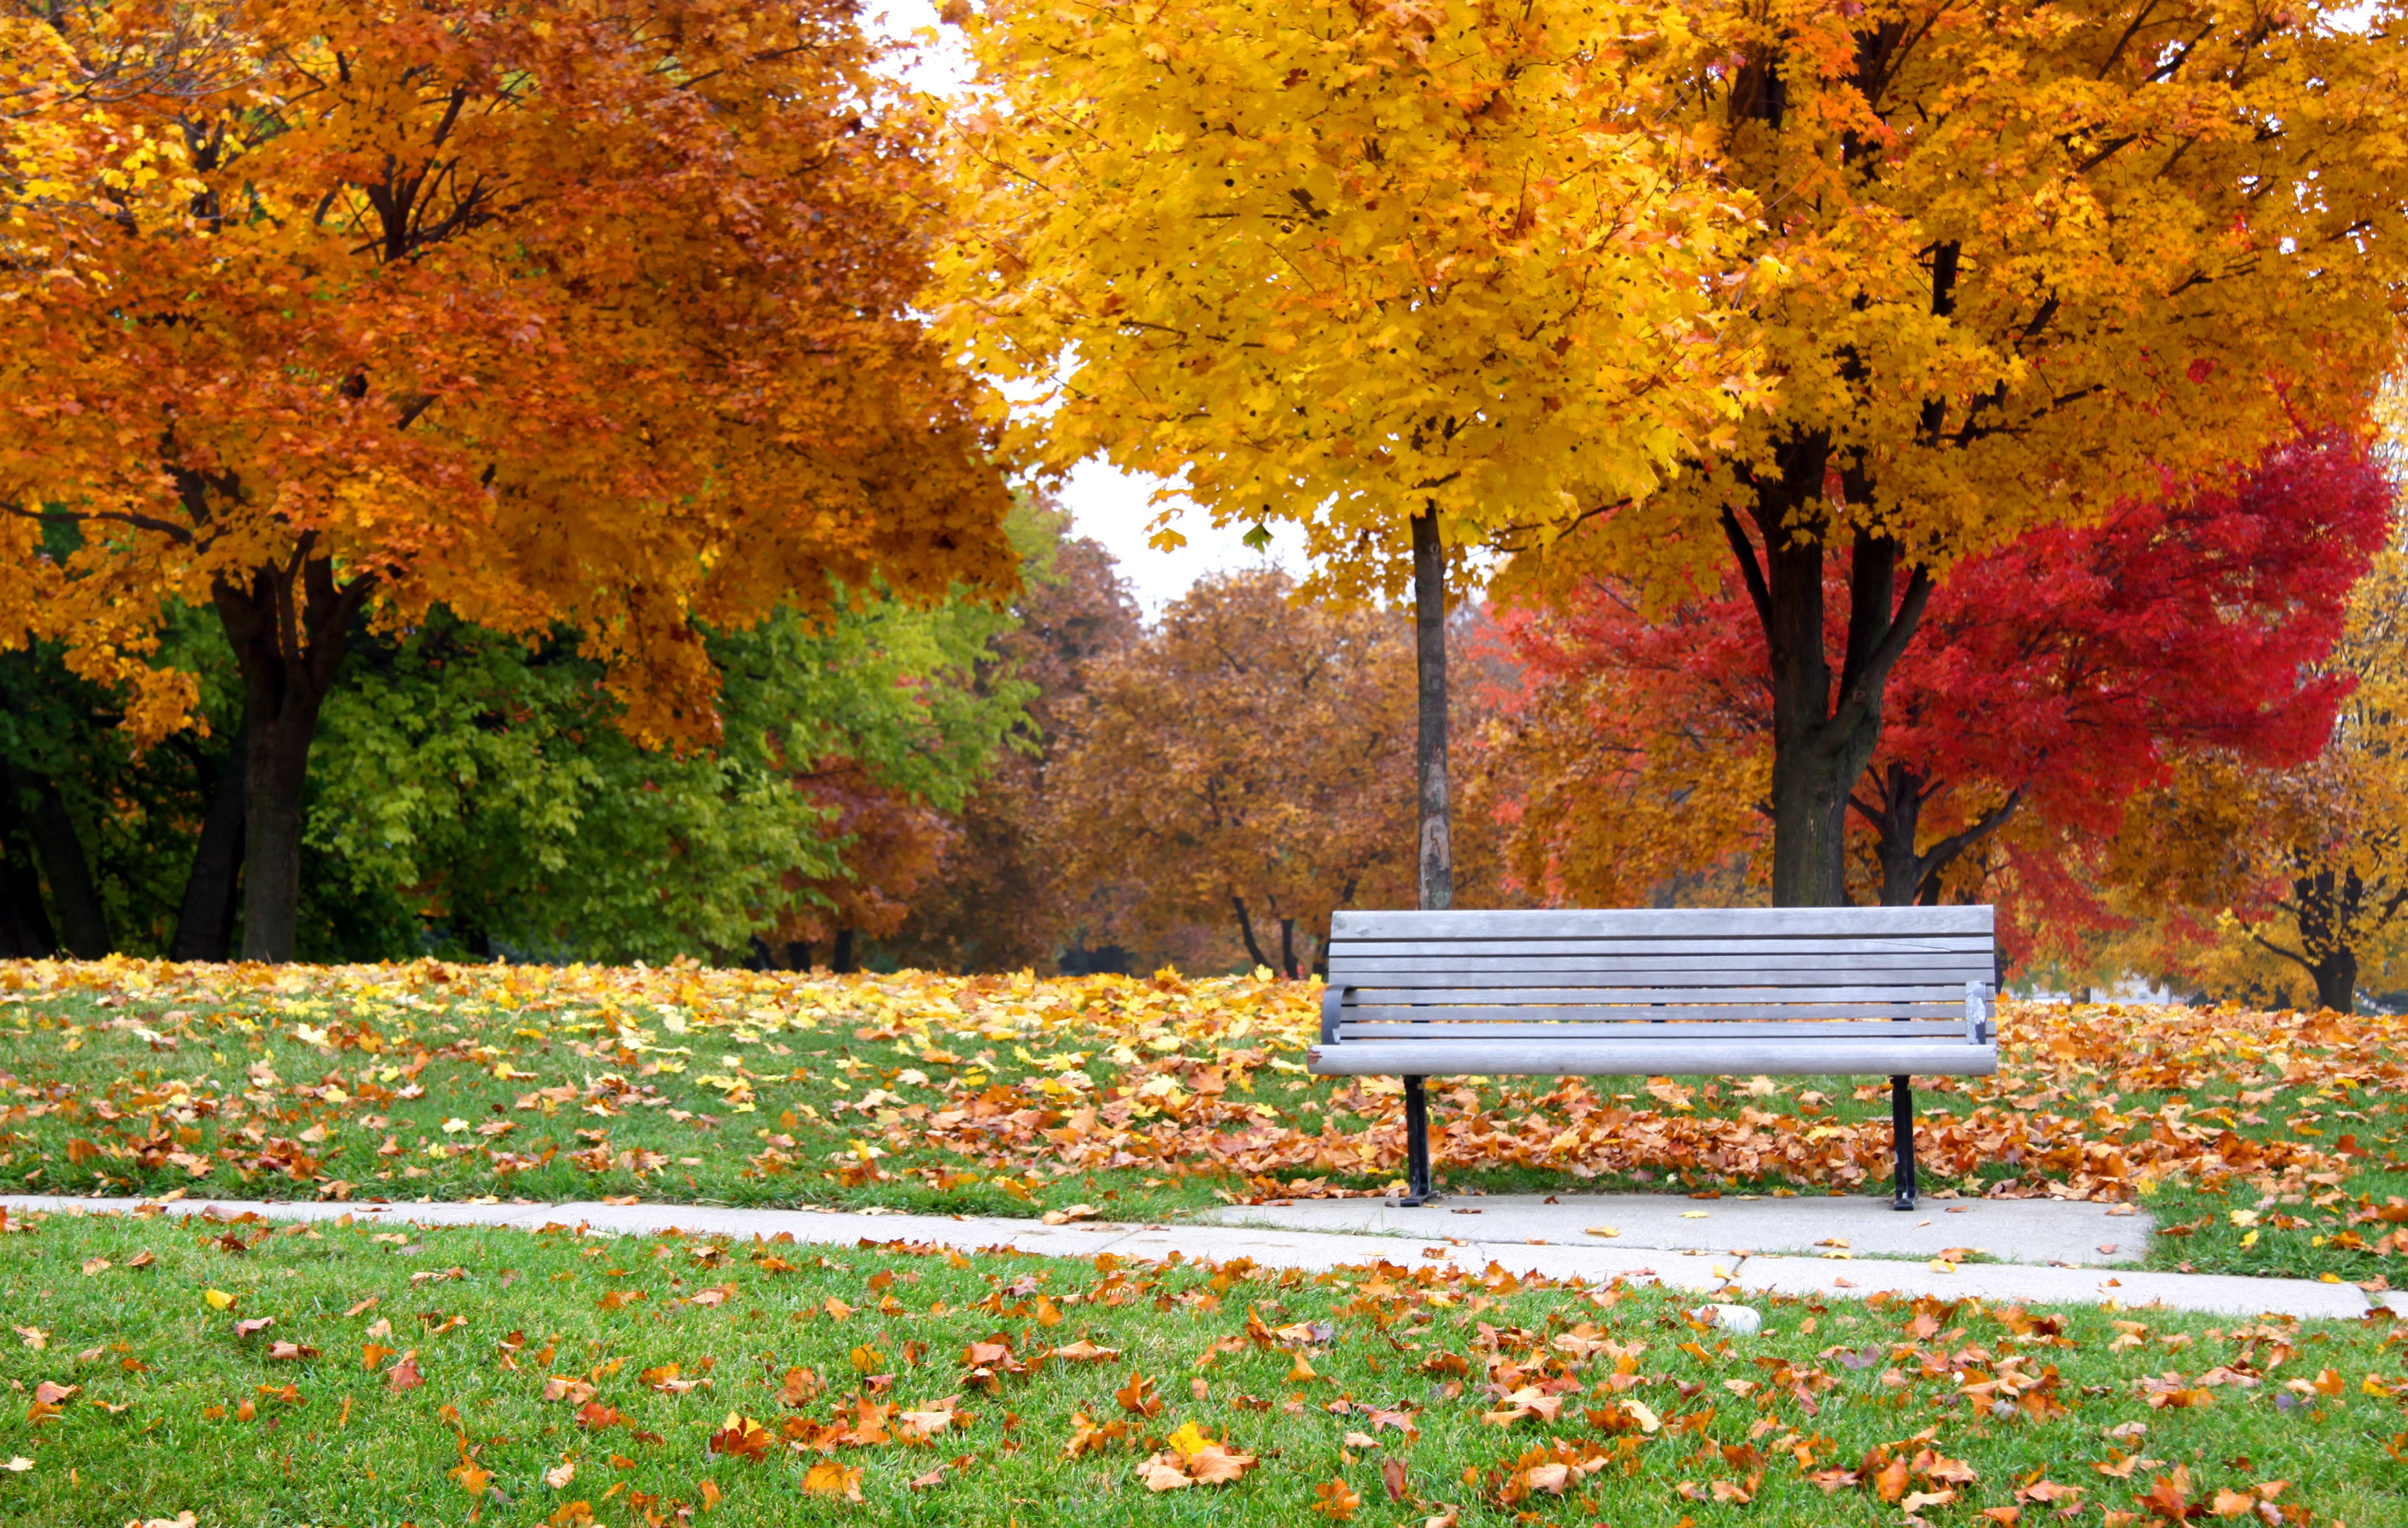 single park bench among trees in full fall foilage